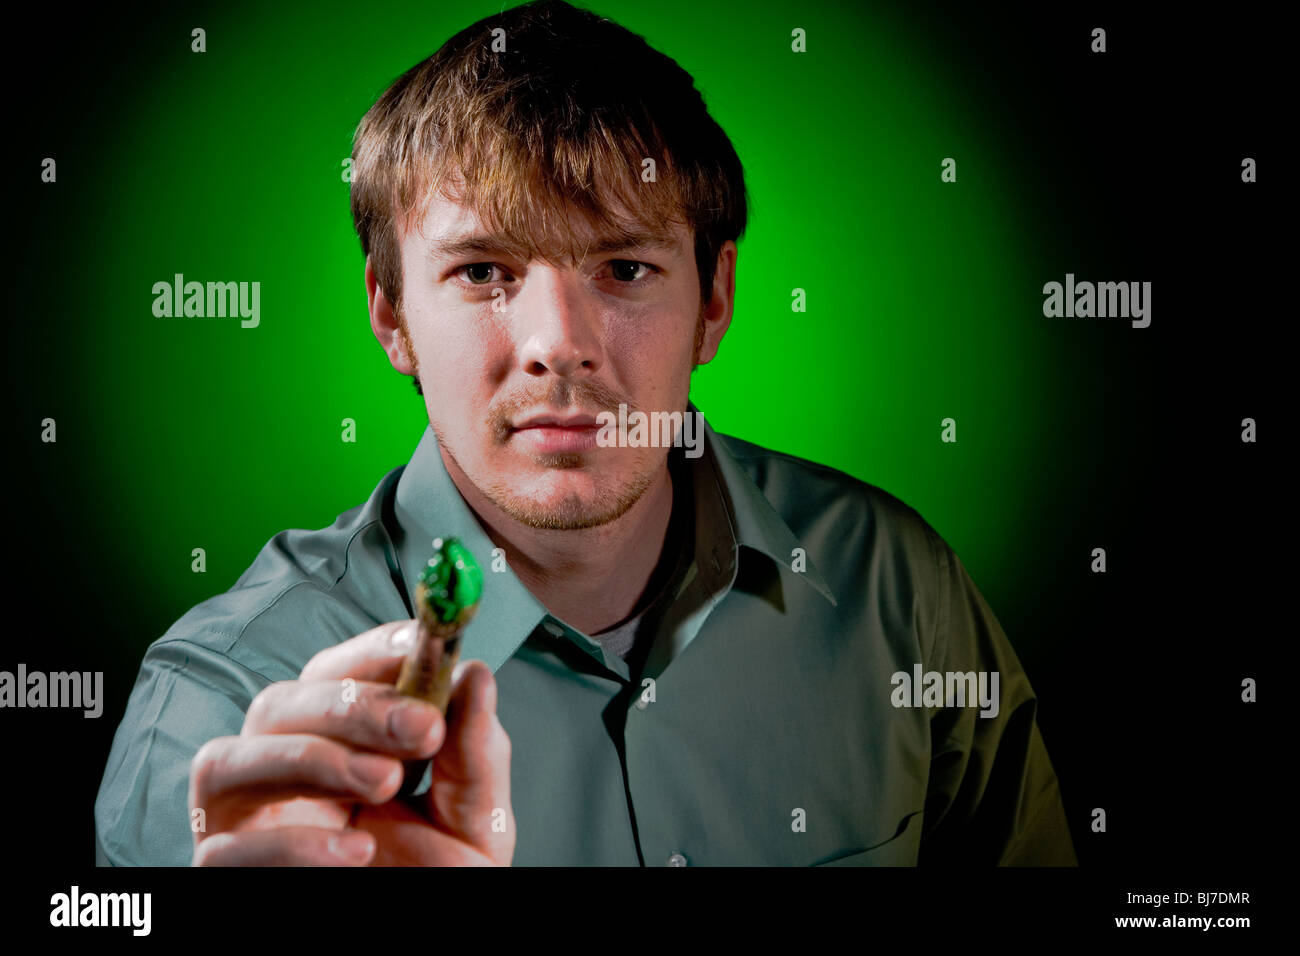 Painter on Green - Stock Image